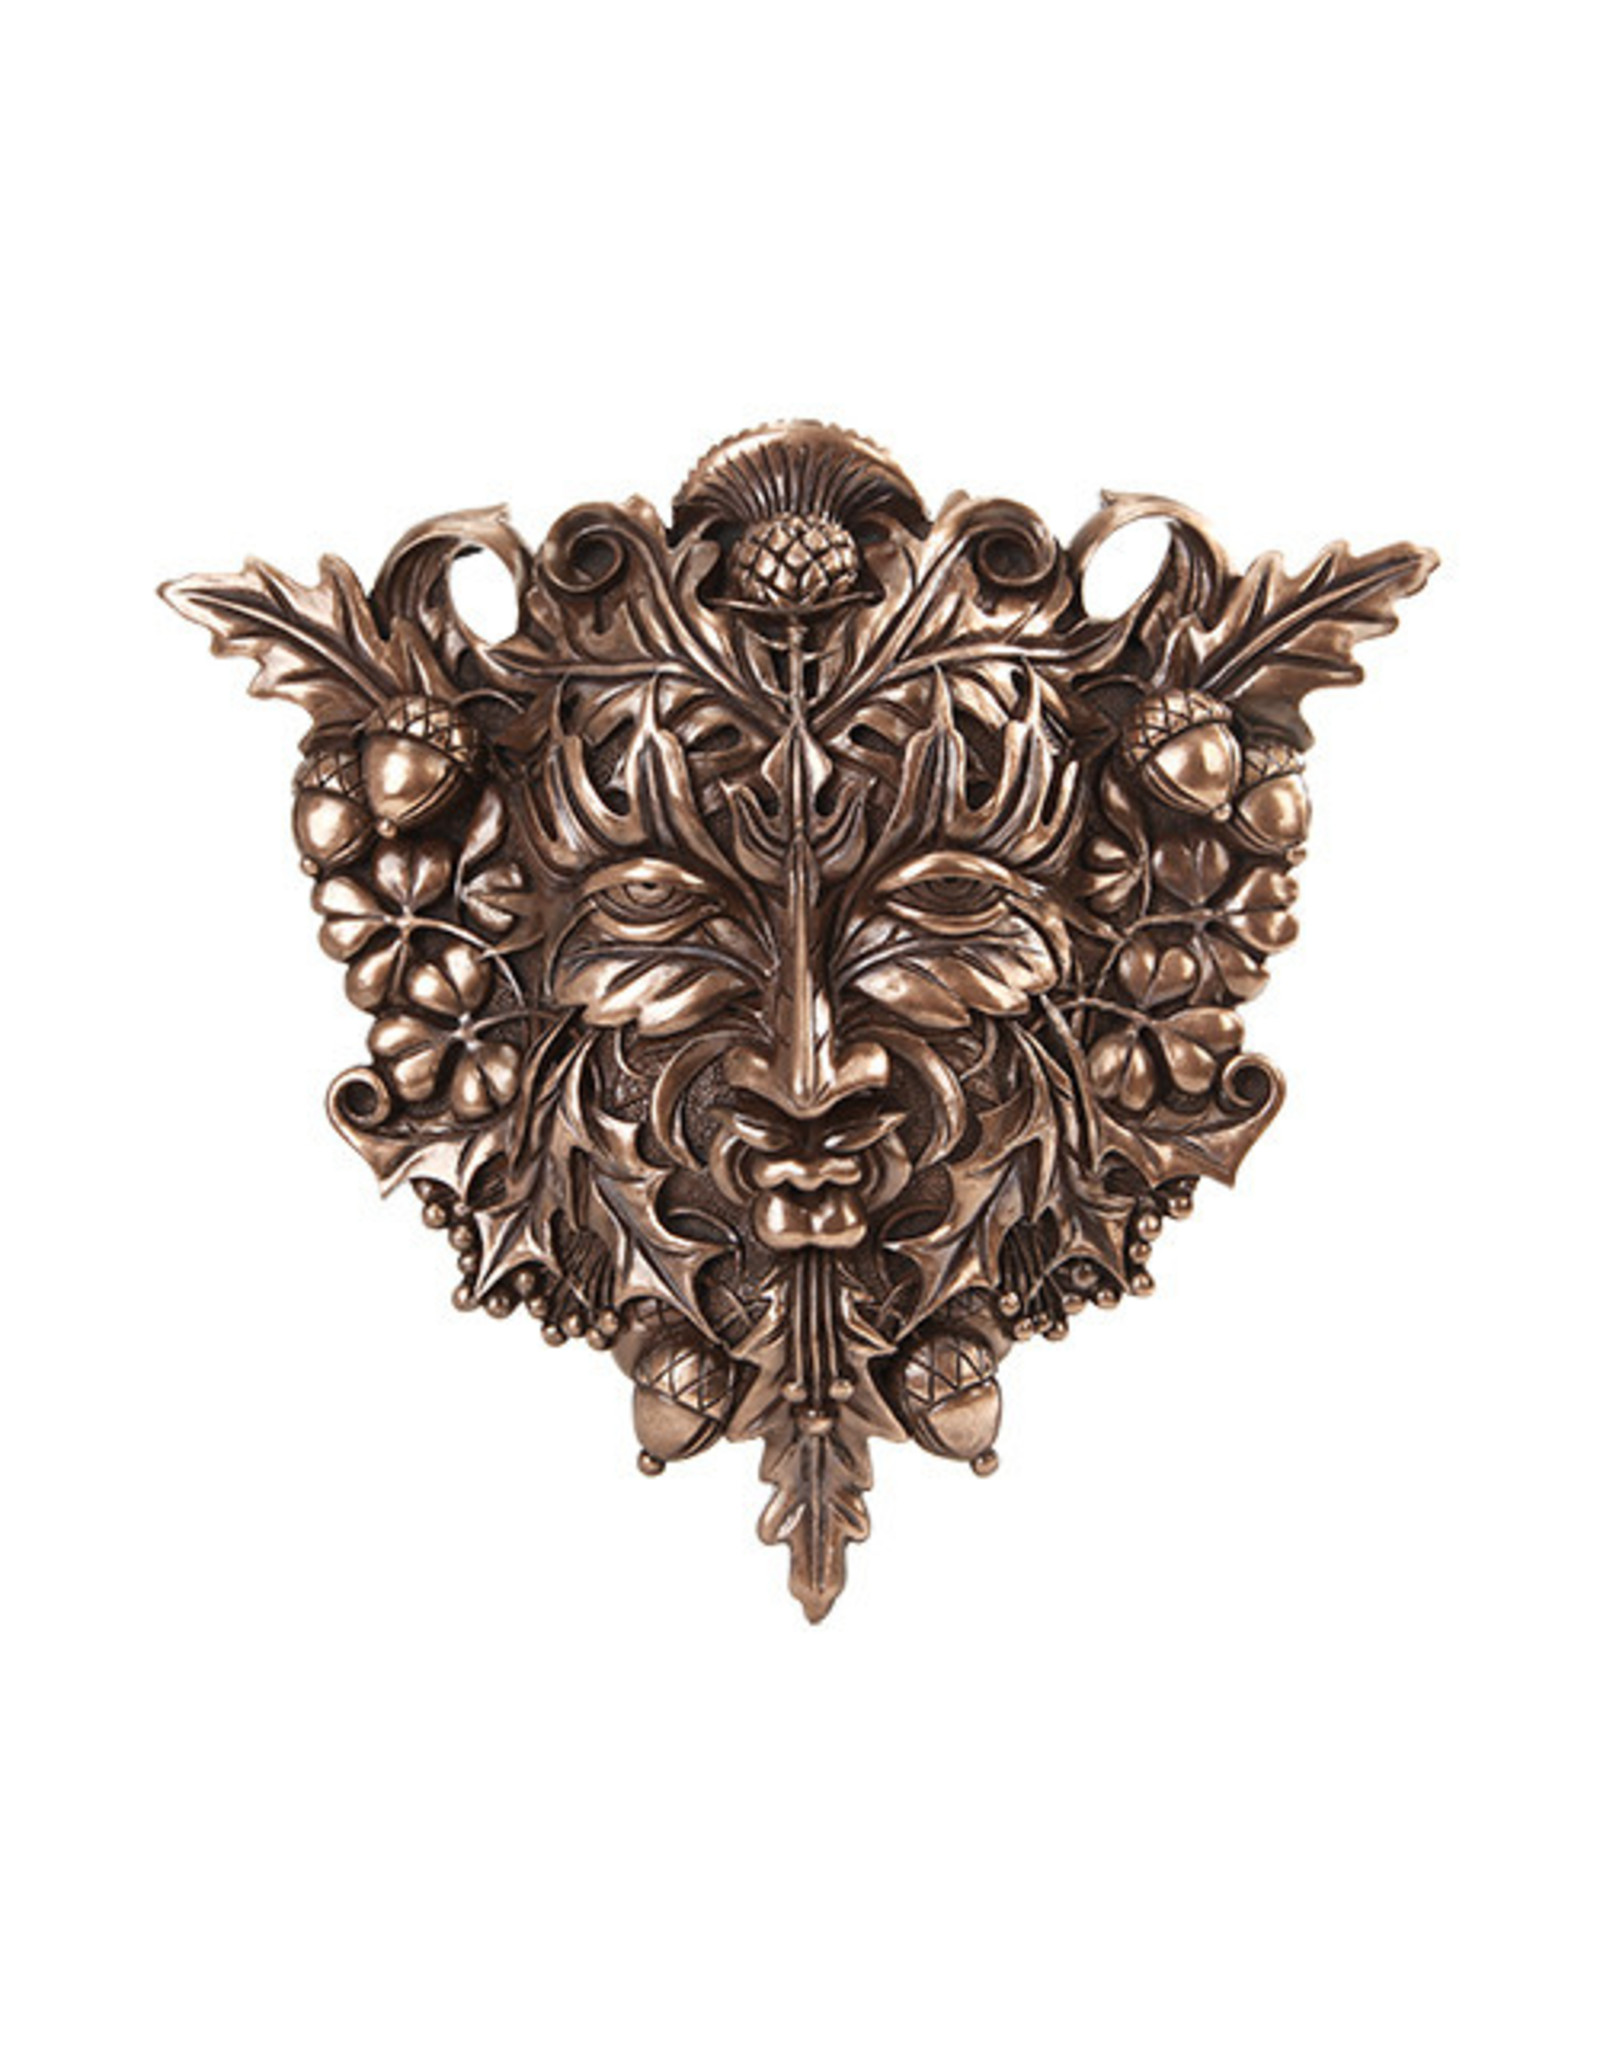 Greenman Wall Plaque in Cold Cast Bronze